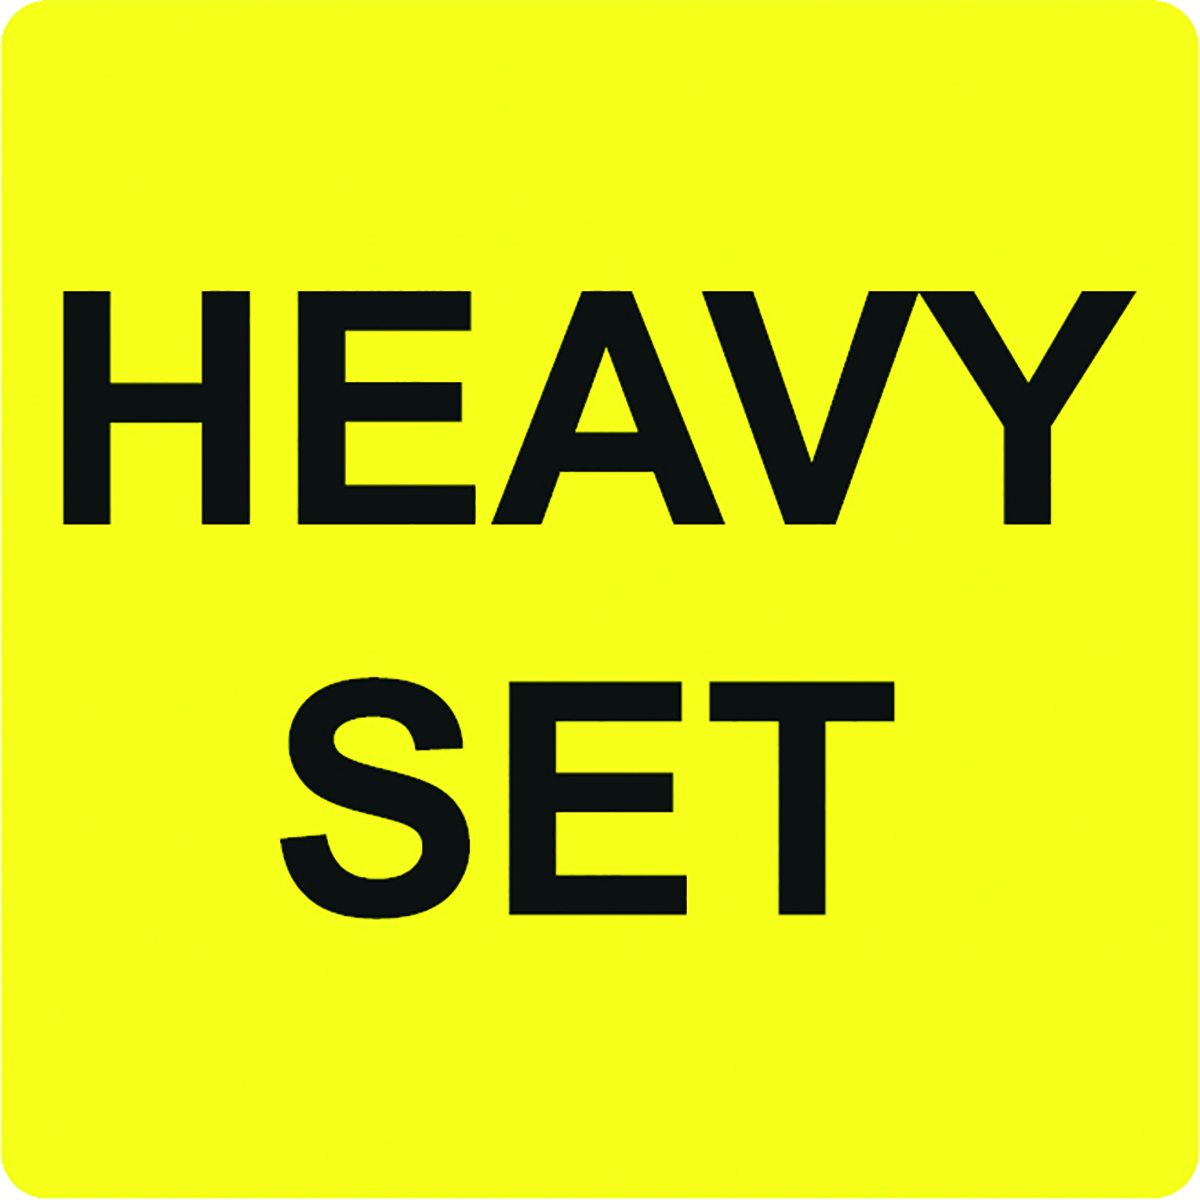 Heavy Set Alert Label  Image